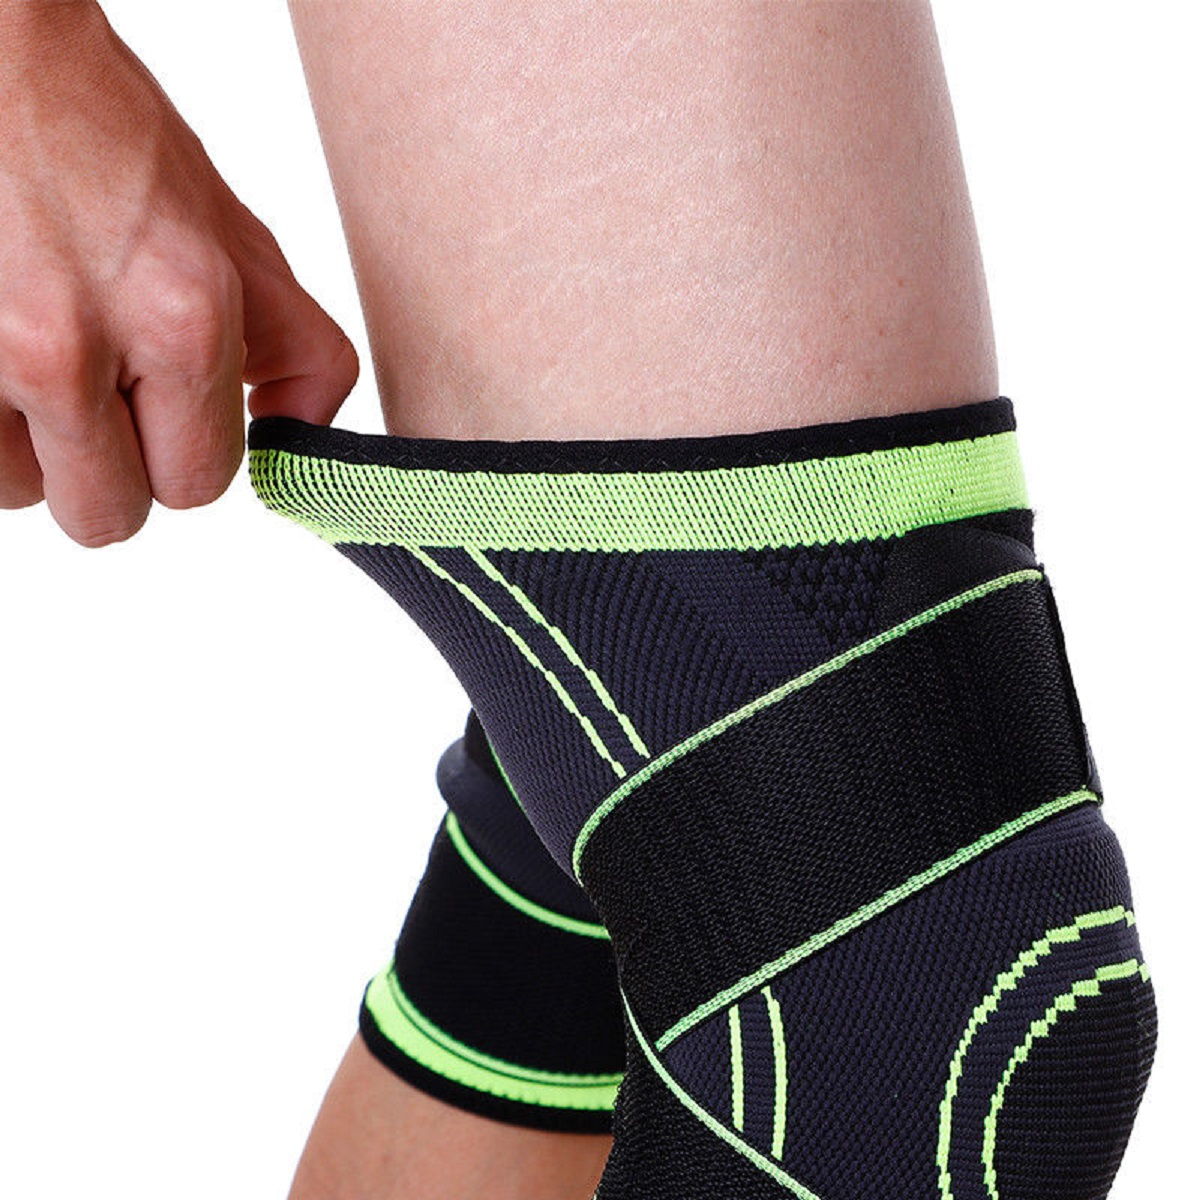 USA-3D-Weaving-Knee-Brace-Breathable-Sleeve-Support-for-Running-Jogging-Sports miniature 19